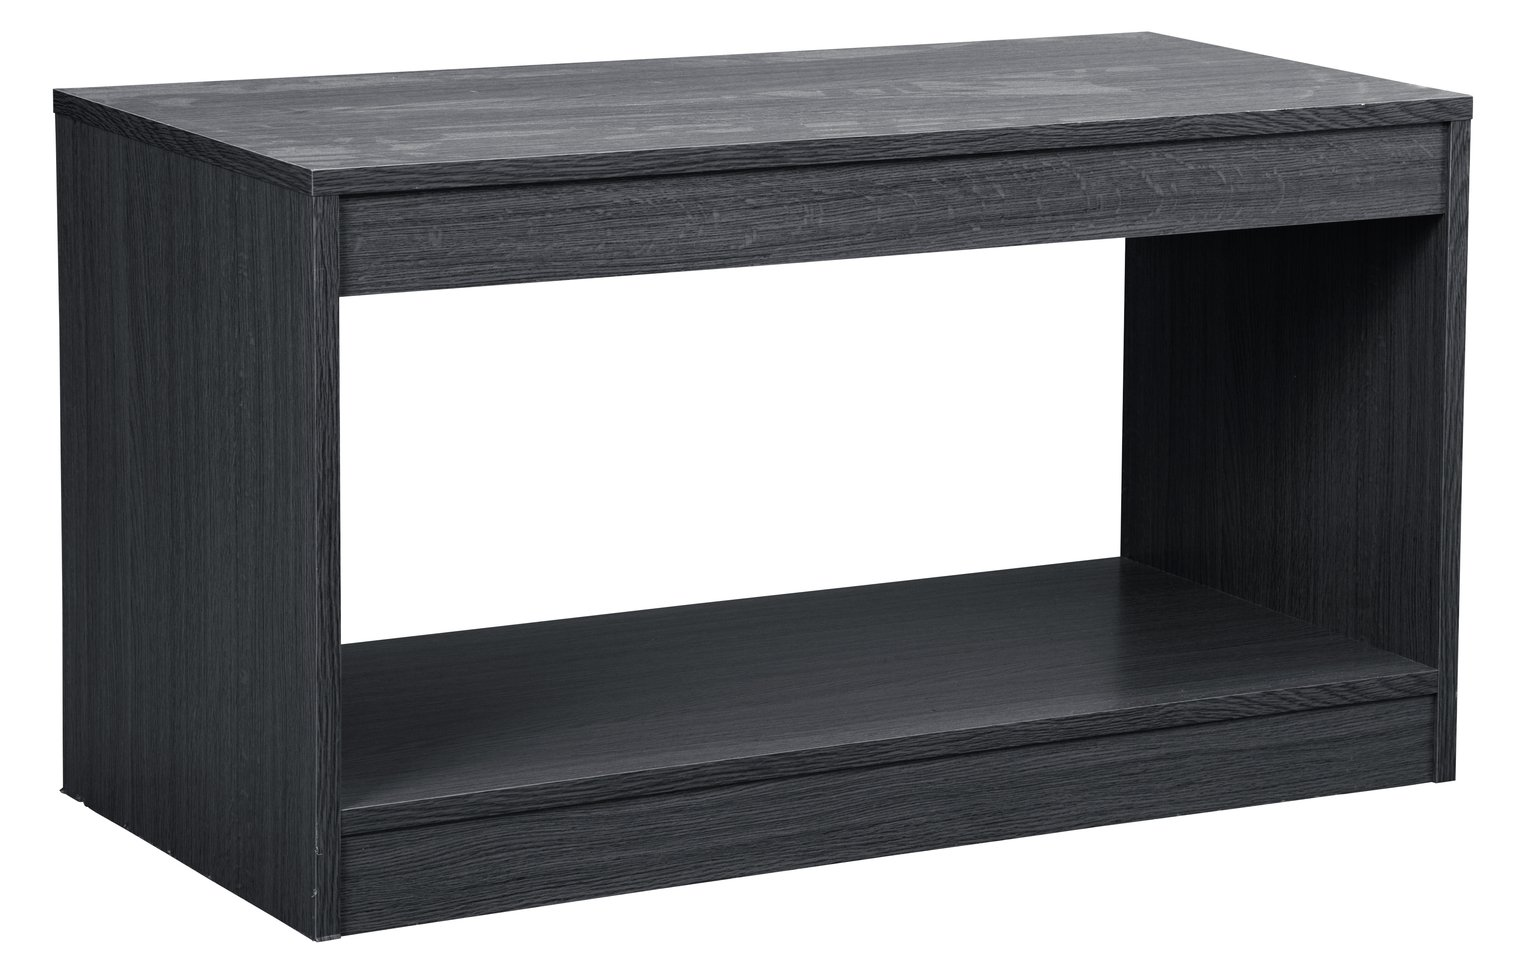 Image of HOME Maine Coffee Table - Black